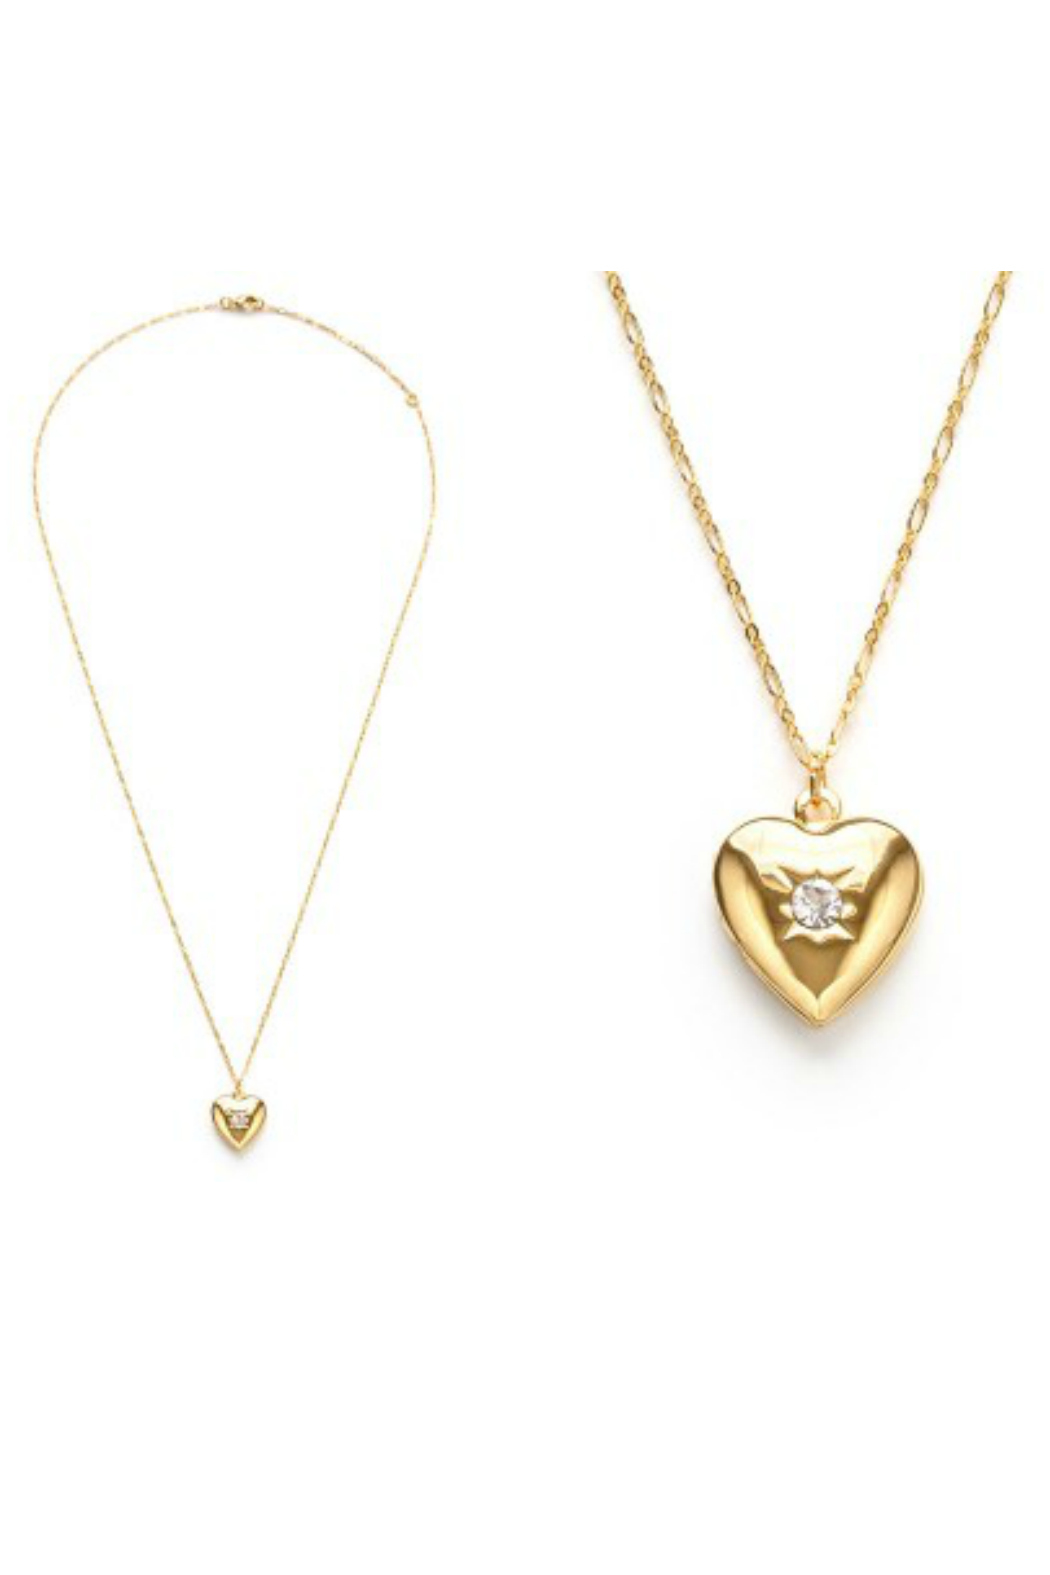 Amano Trading SMALL HEART LOCKET - Main Image